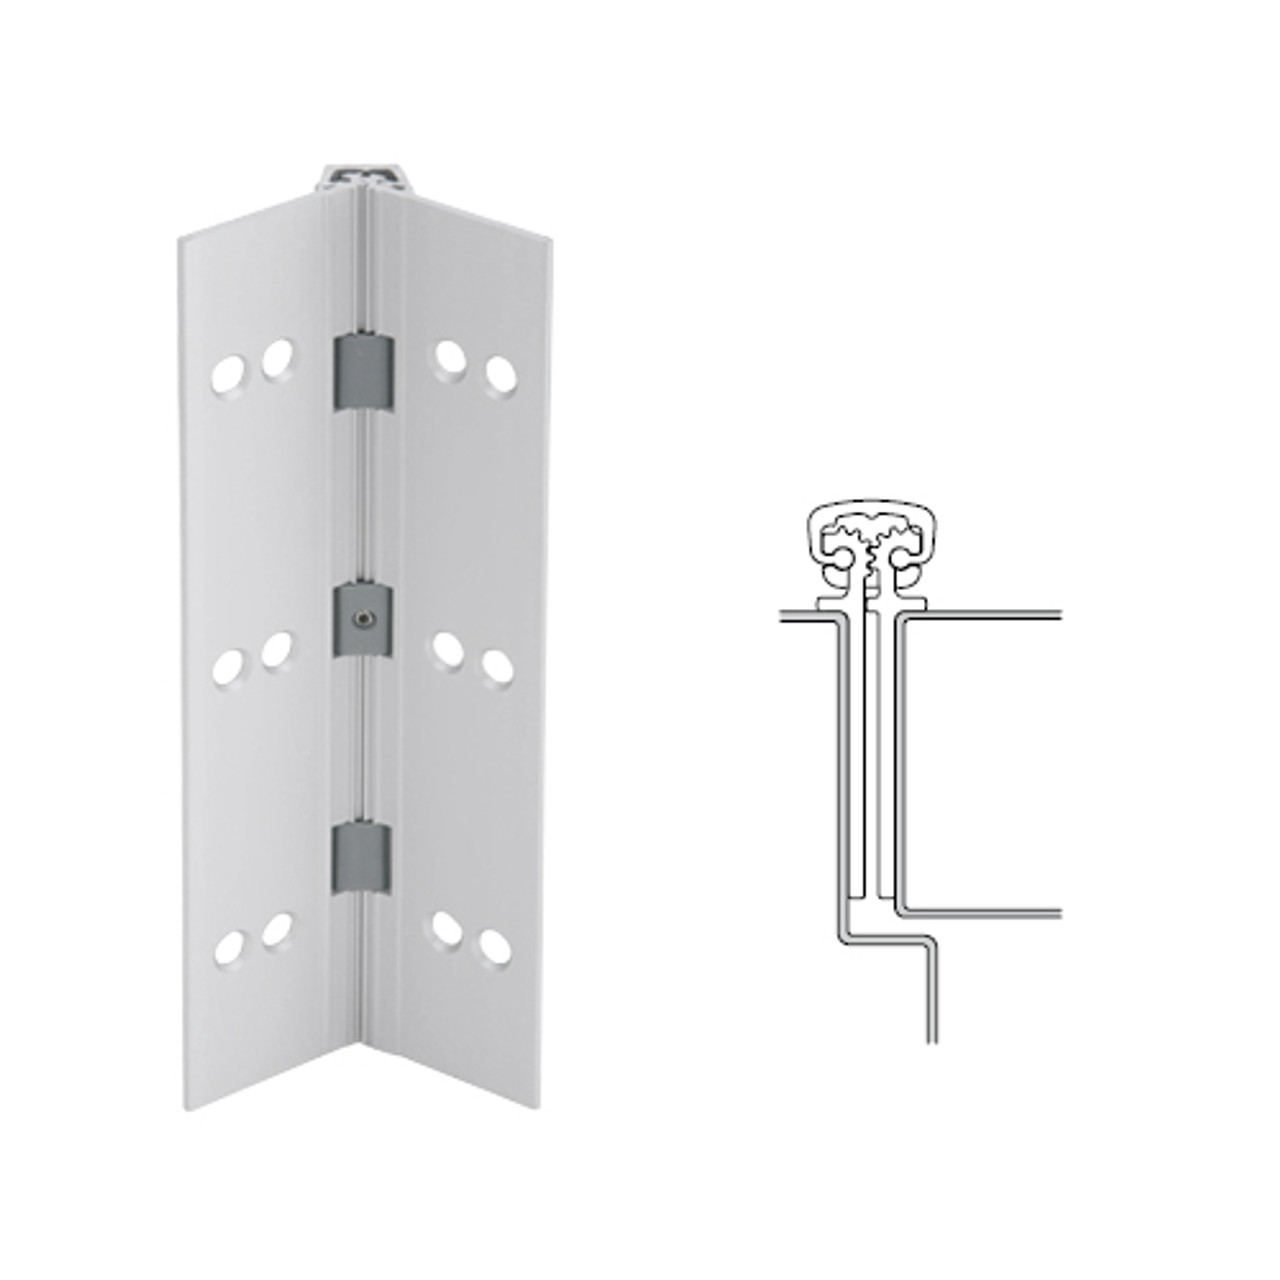 027XY-US28-83-WD IVES Full Mortise Continuous Geared Hinges with Wood Screws in Satin Aluminum